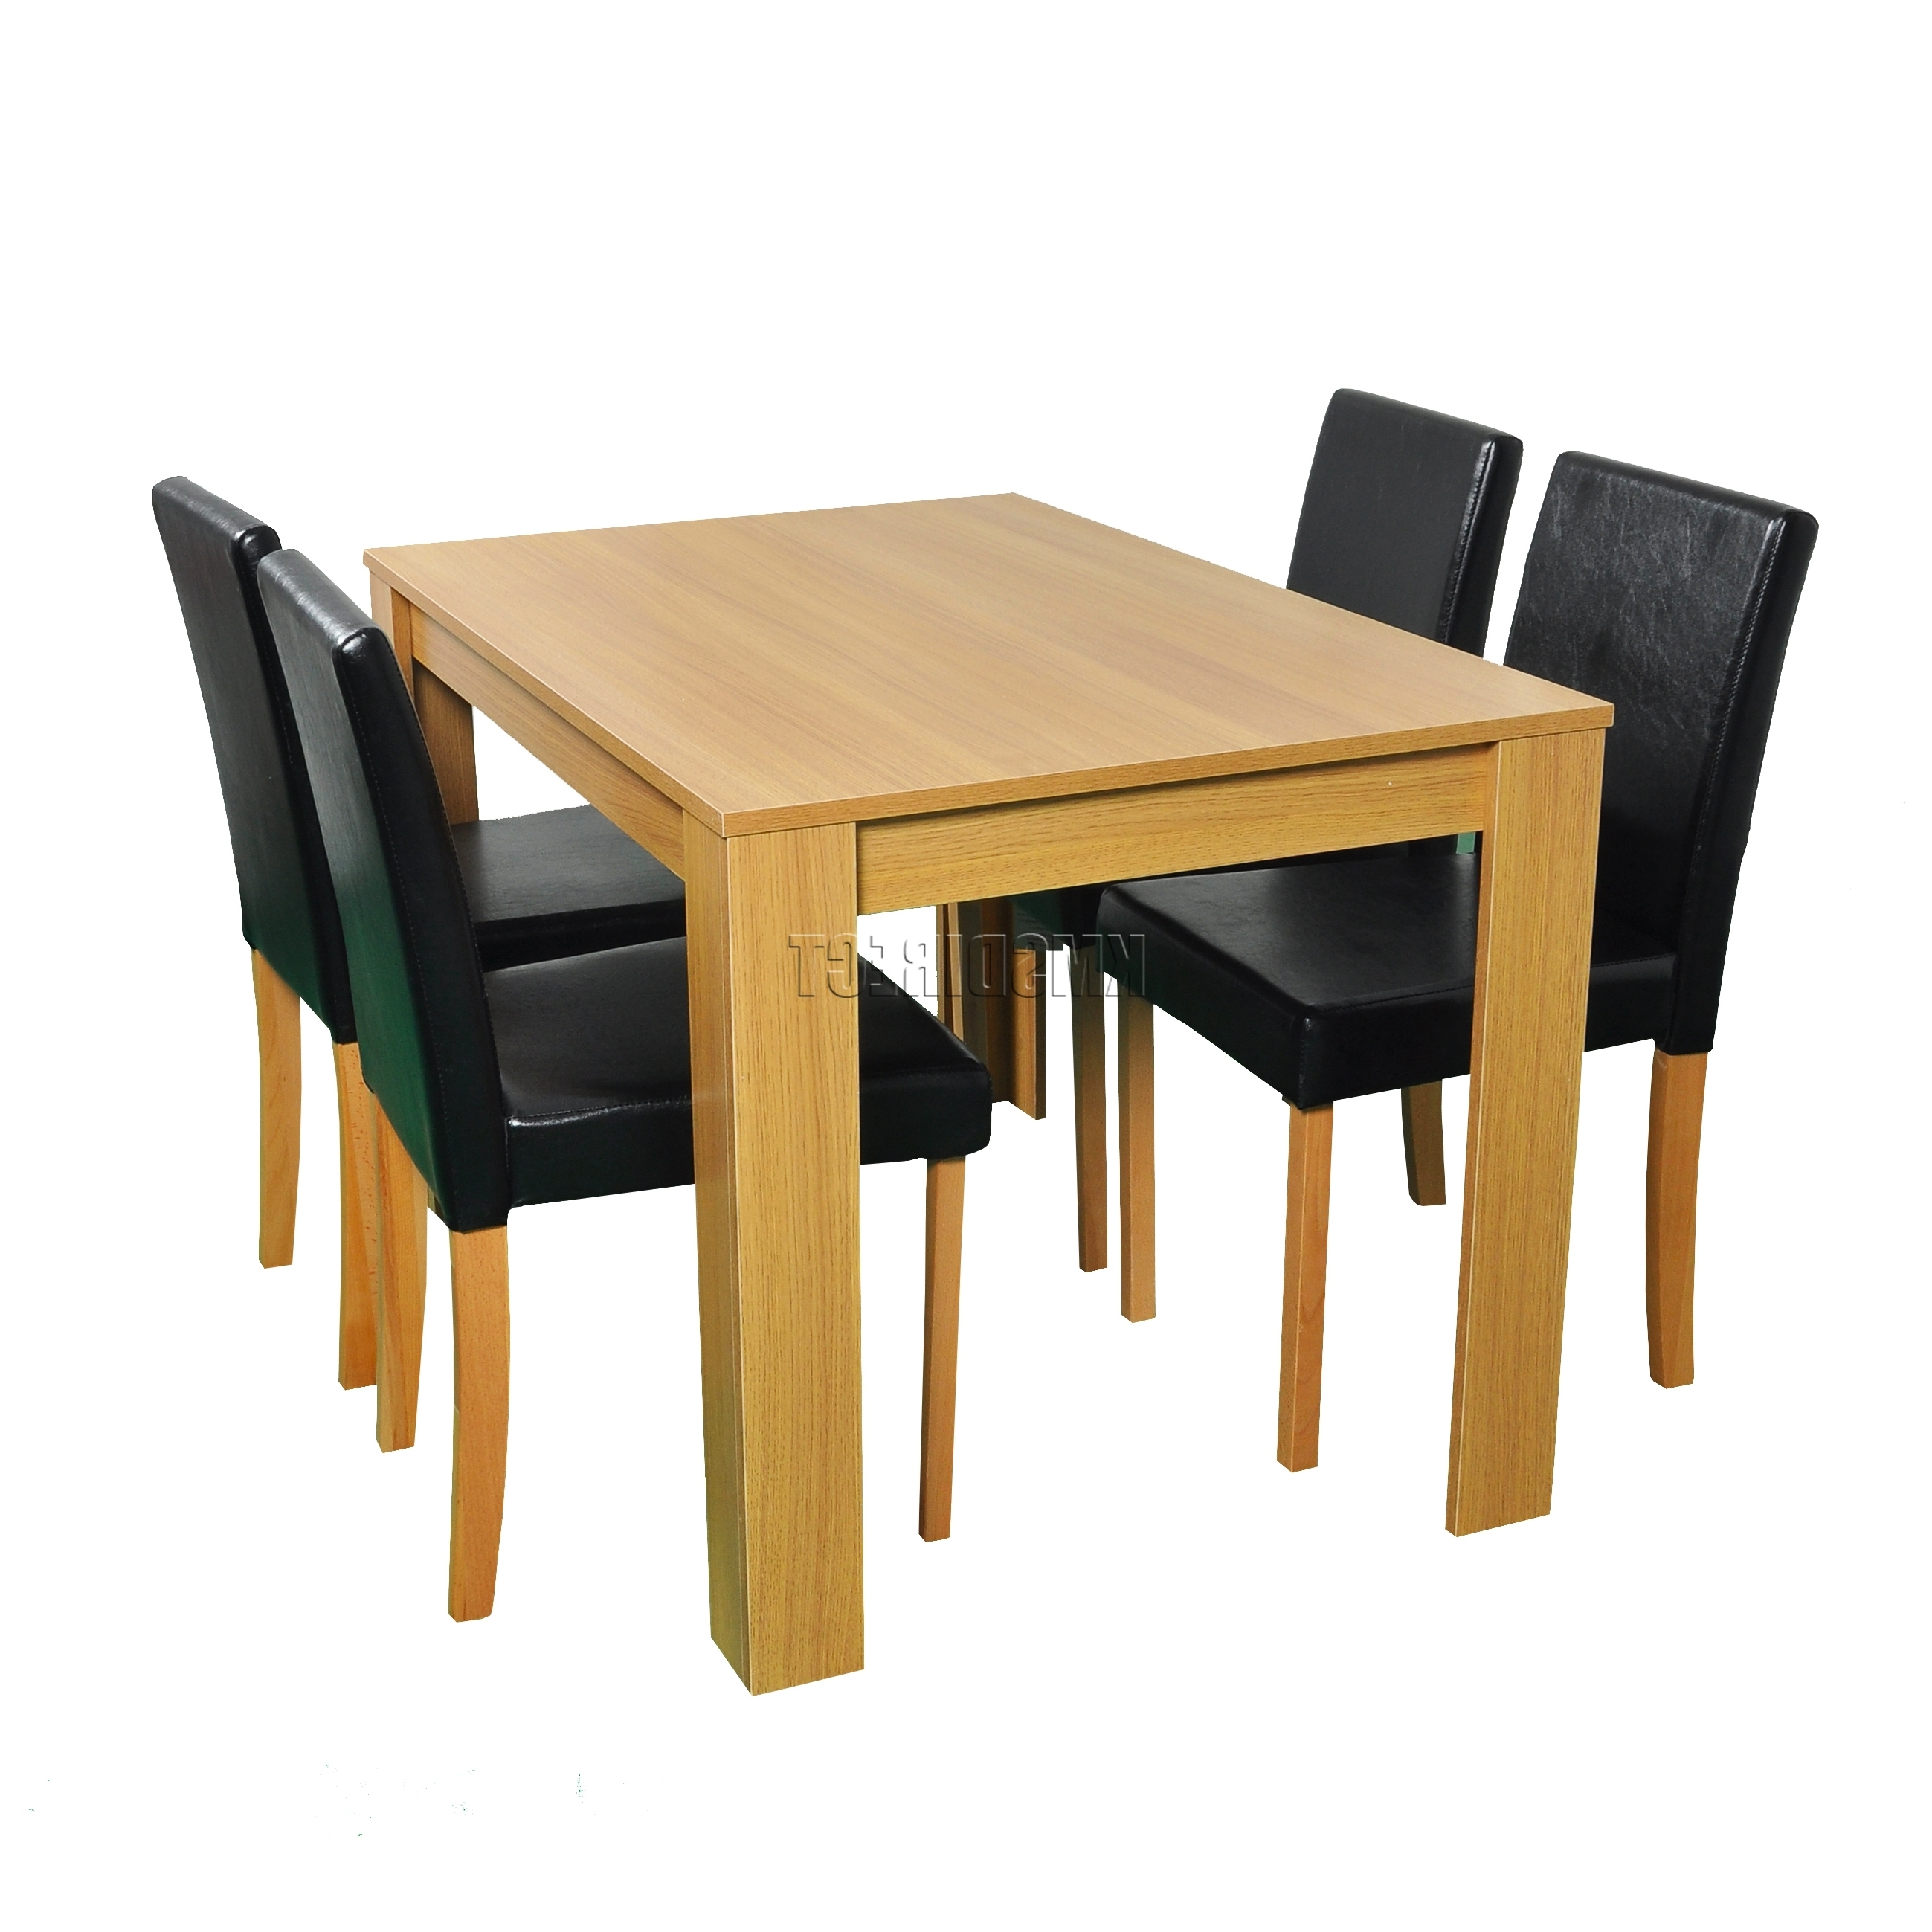 Westwood Wooden Dining Table And 4 Pu Faux Leather Chairs Set Within Favorite Oak Dining Tables And Leather Chairs (View 25 of 25)